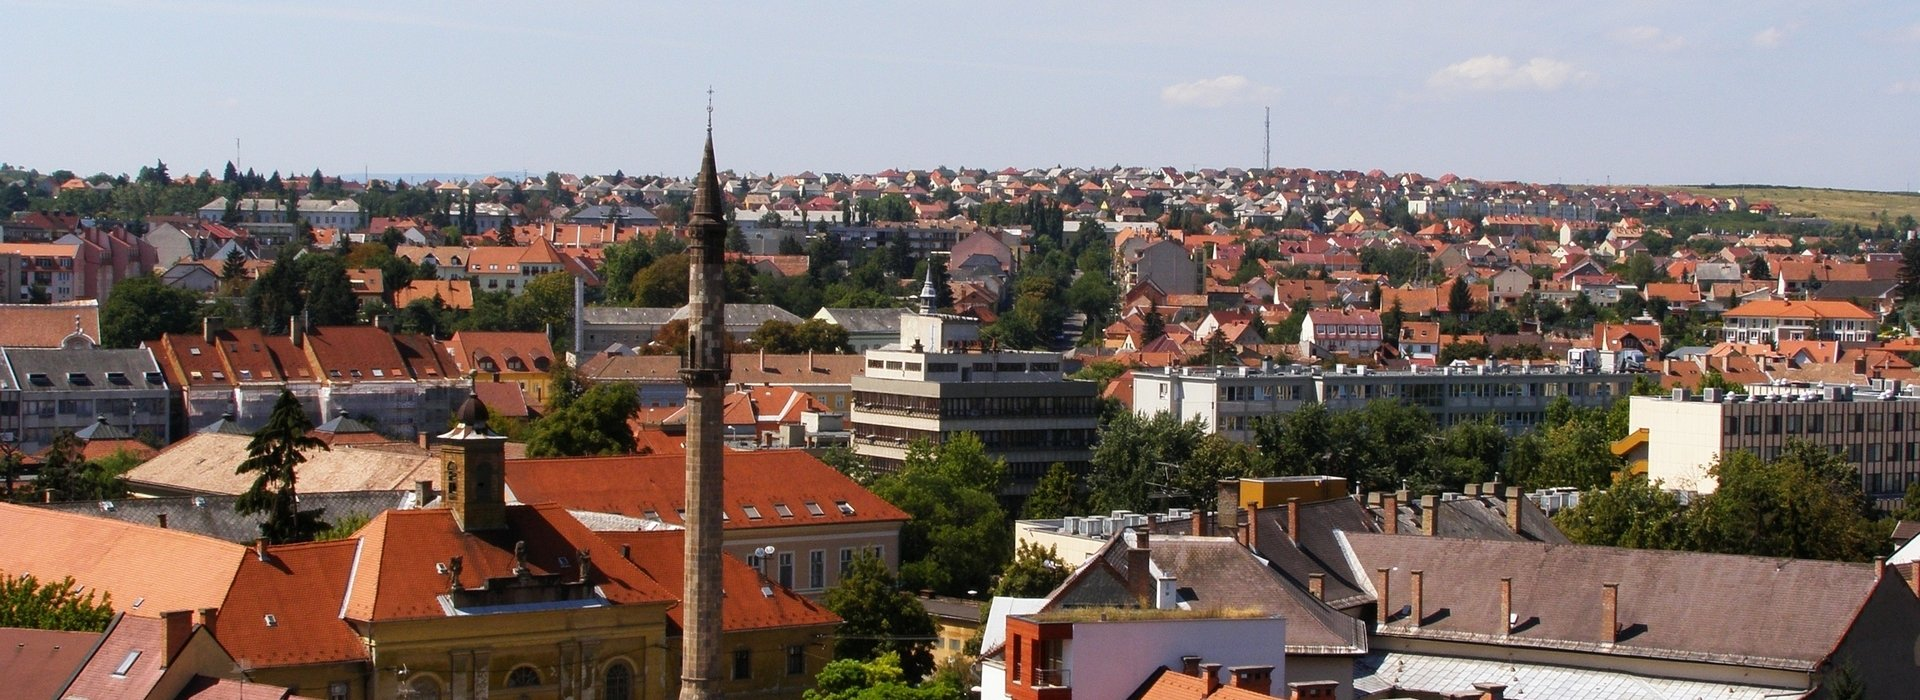 Eger Images